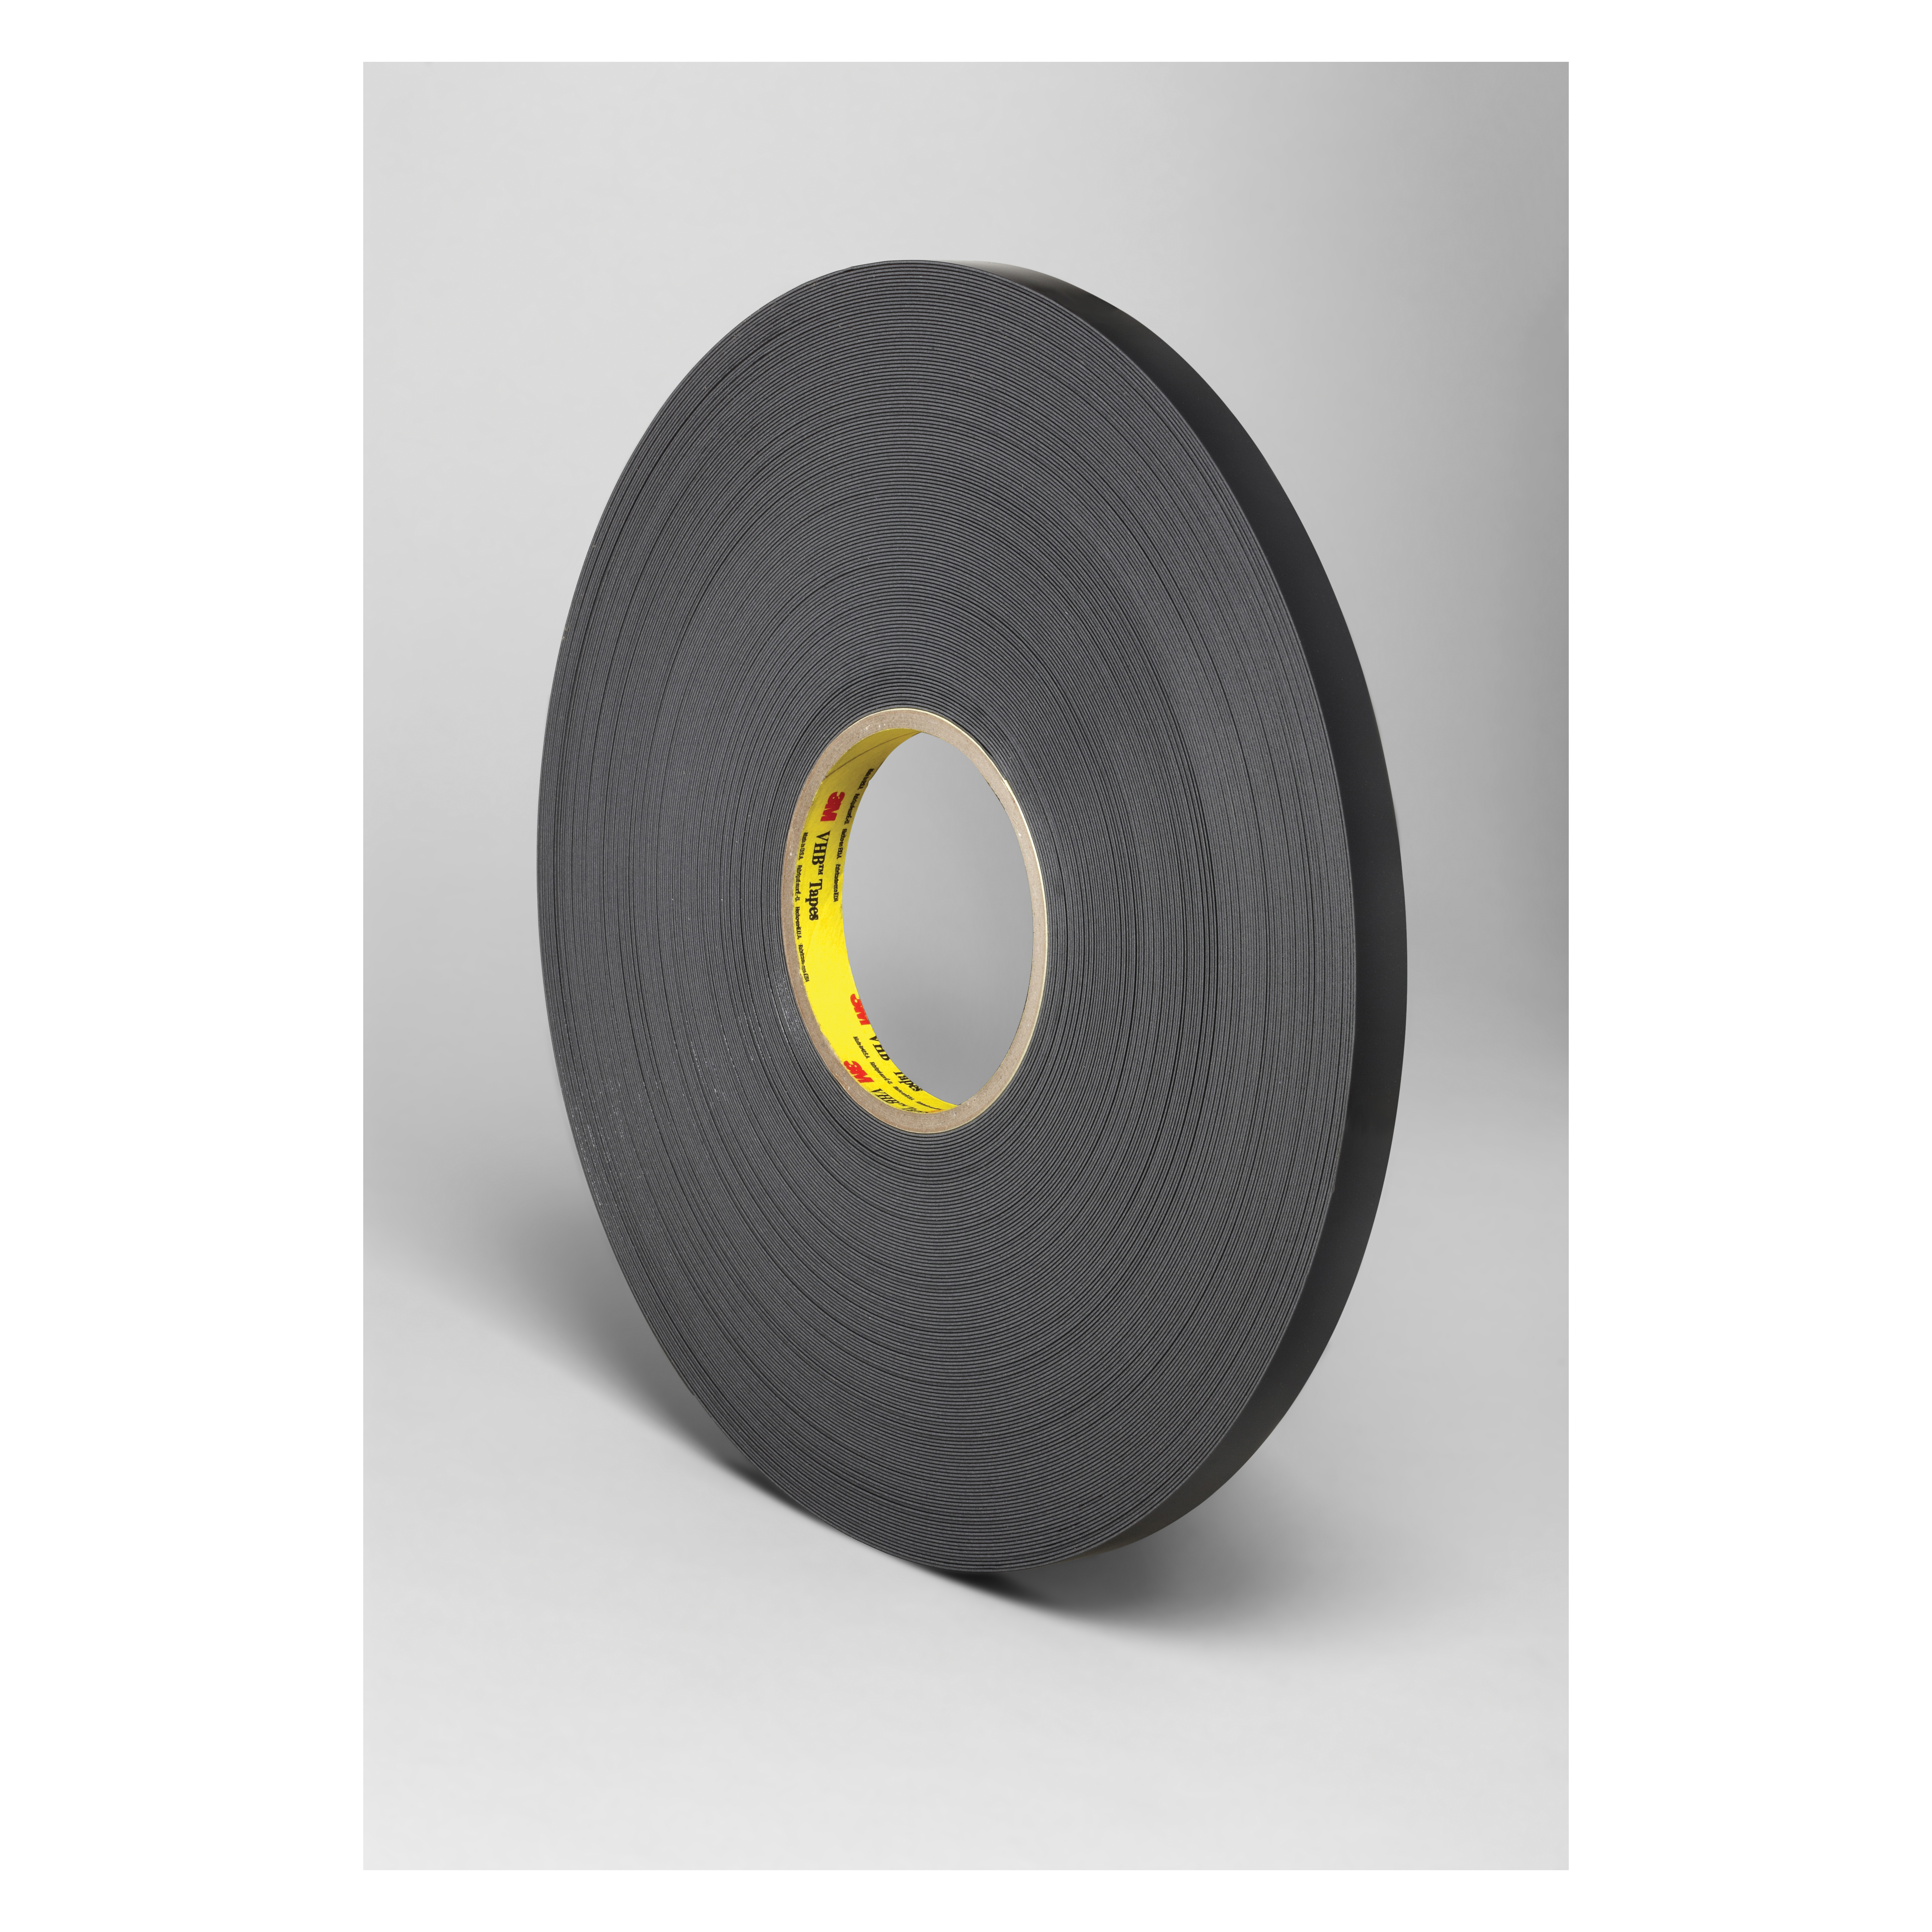 3M™ VHB™ 021200-86293 Pressure Sensitive Double Sided Bonding Tape, 72 yd L x 1/4 in W, 0.025 in THK, General Purpose Acrylic Adhesive, Acrylic Foam Backing, Black